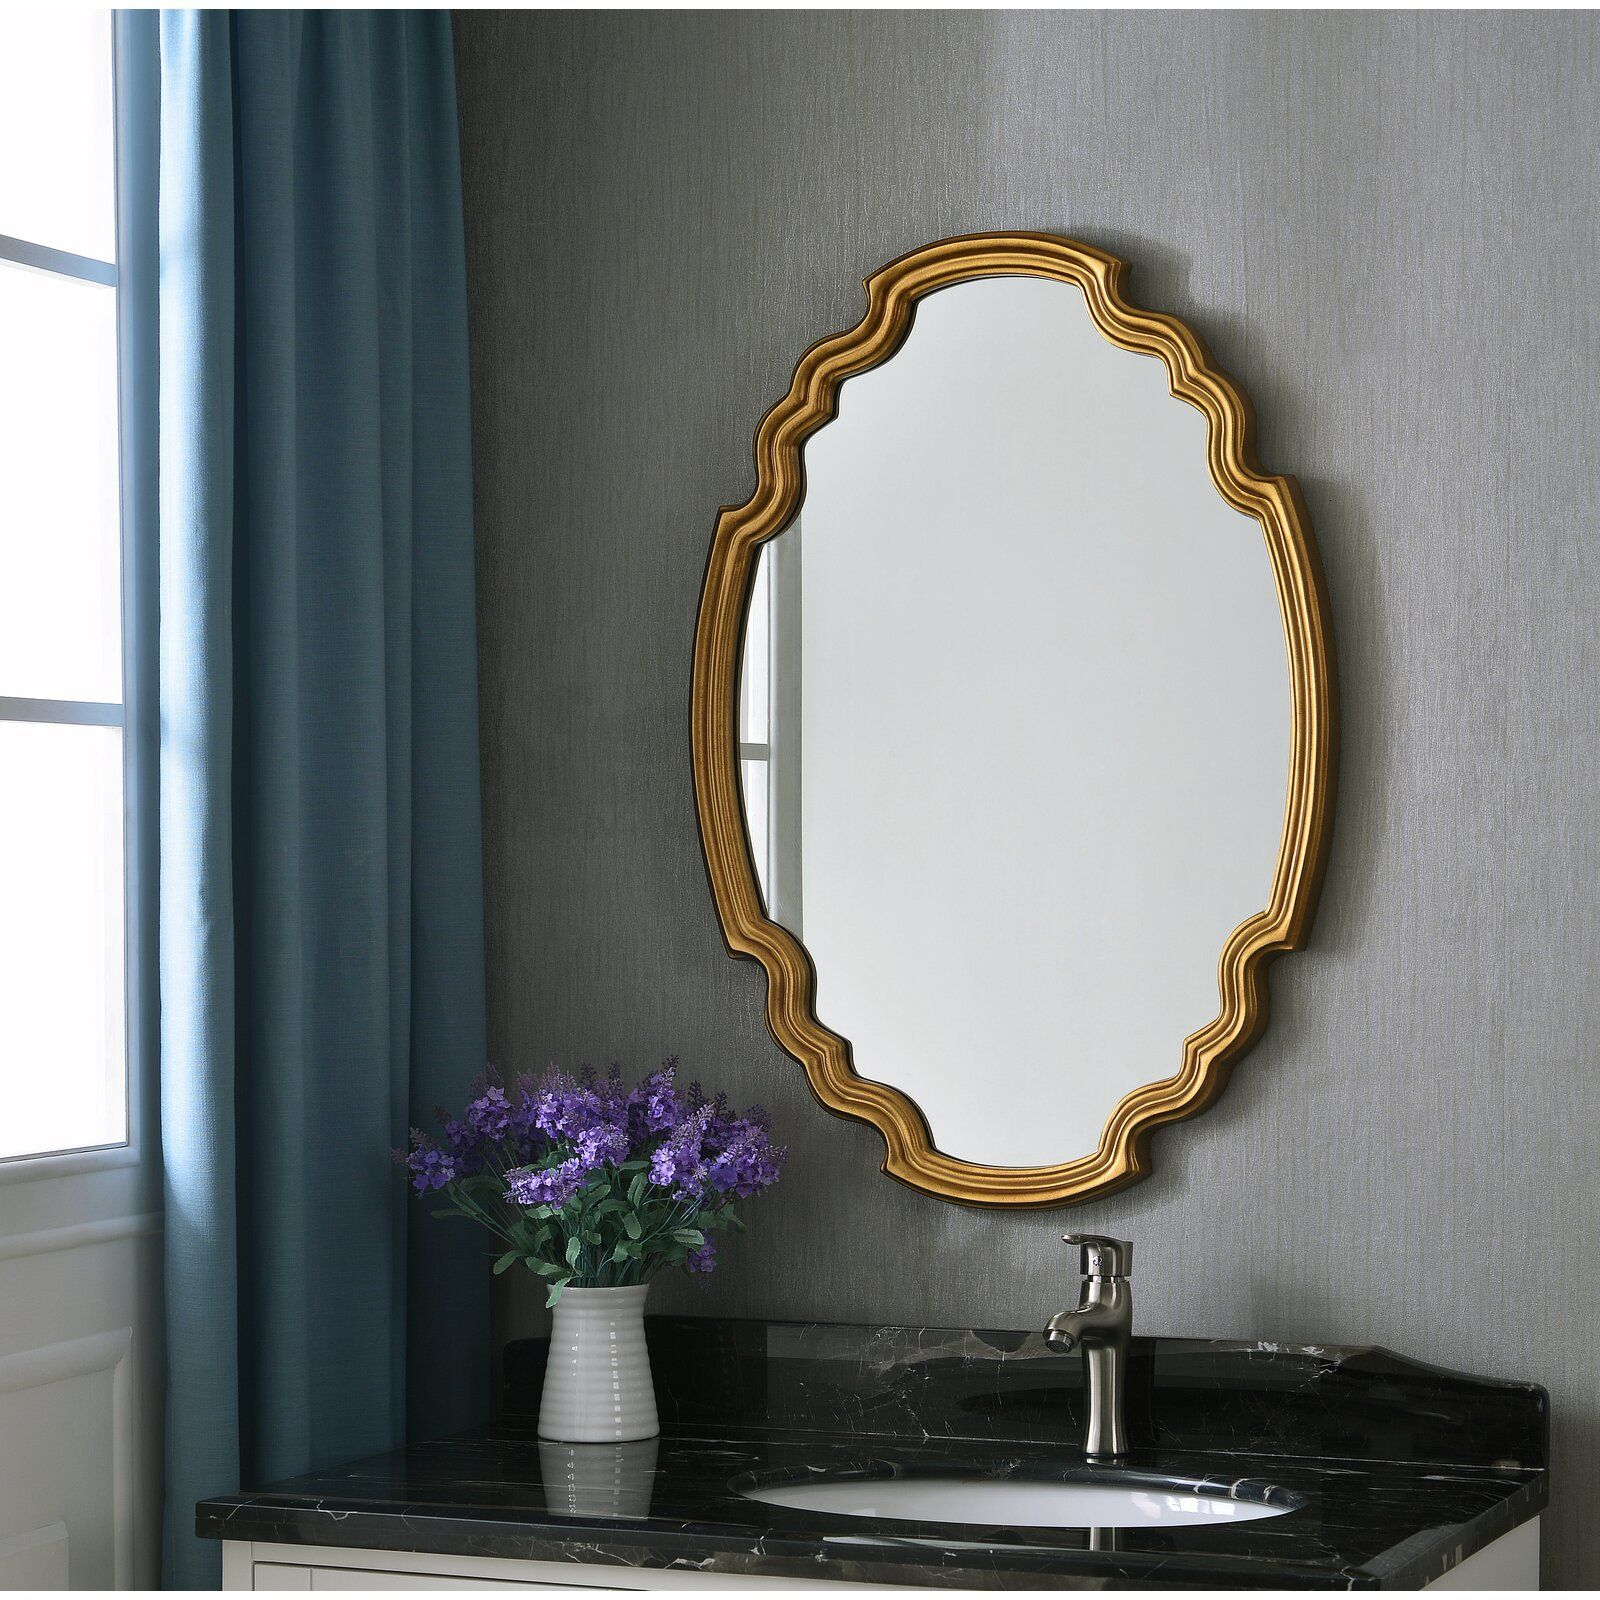 Broadmeadow Glam Accent Wall Mirror In 2019 | Farmhouse Intended For Broadmeadow Glam Accent Wall Mirrors (View 3 of 20)